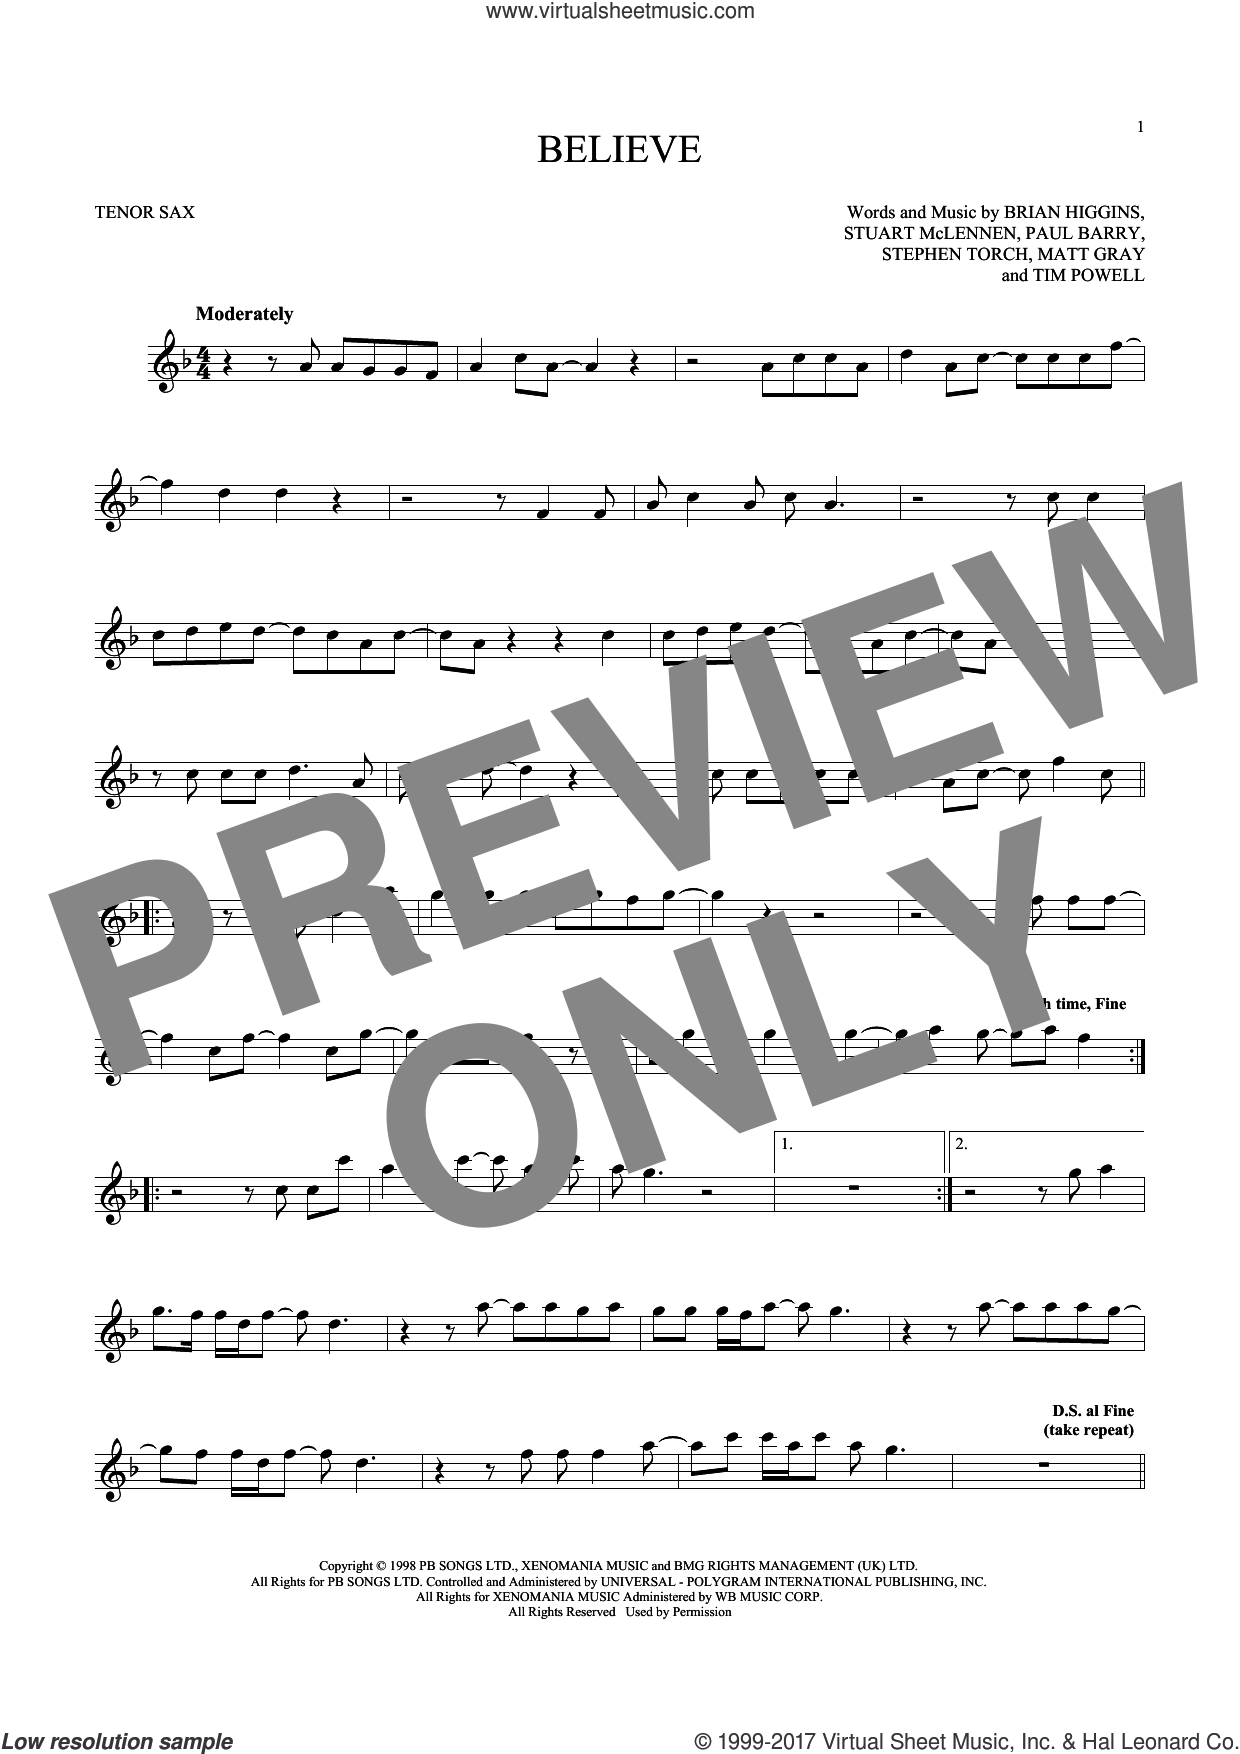 Believe sheet music for tenor saxophone solo by Cher, Brian Higgins, Matt Gray, Paul Barry, Stephen Torch, Stuart McLennen and Timothy Powell, intermediate skill level